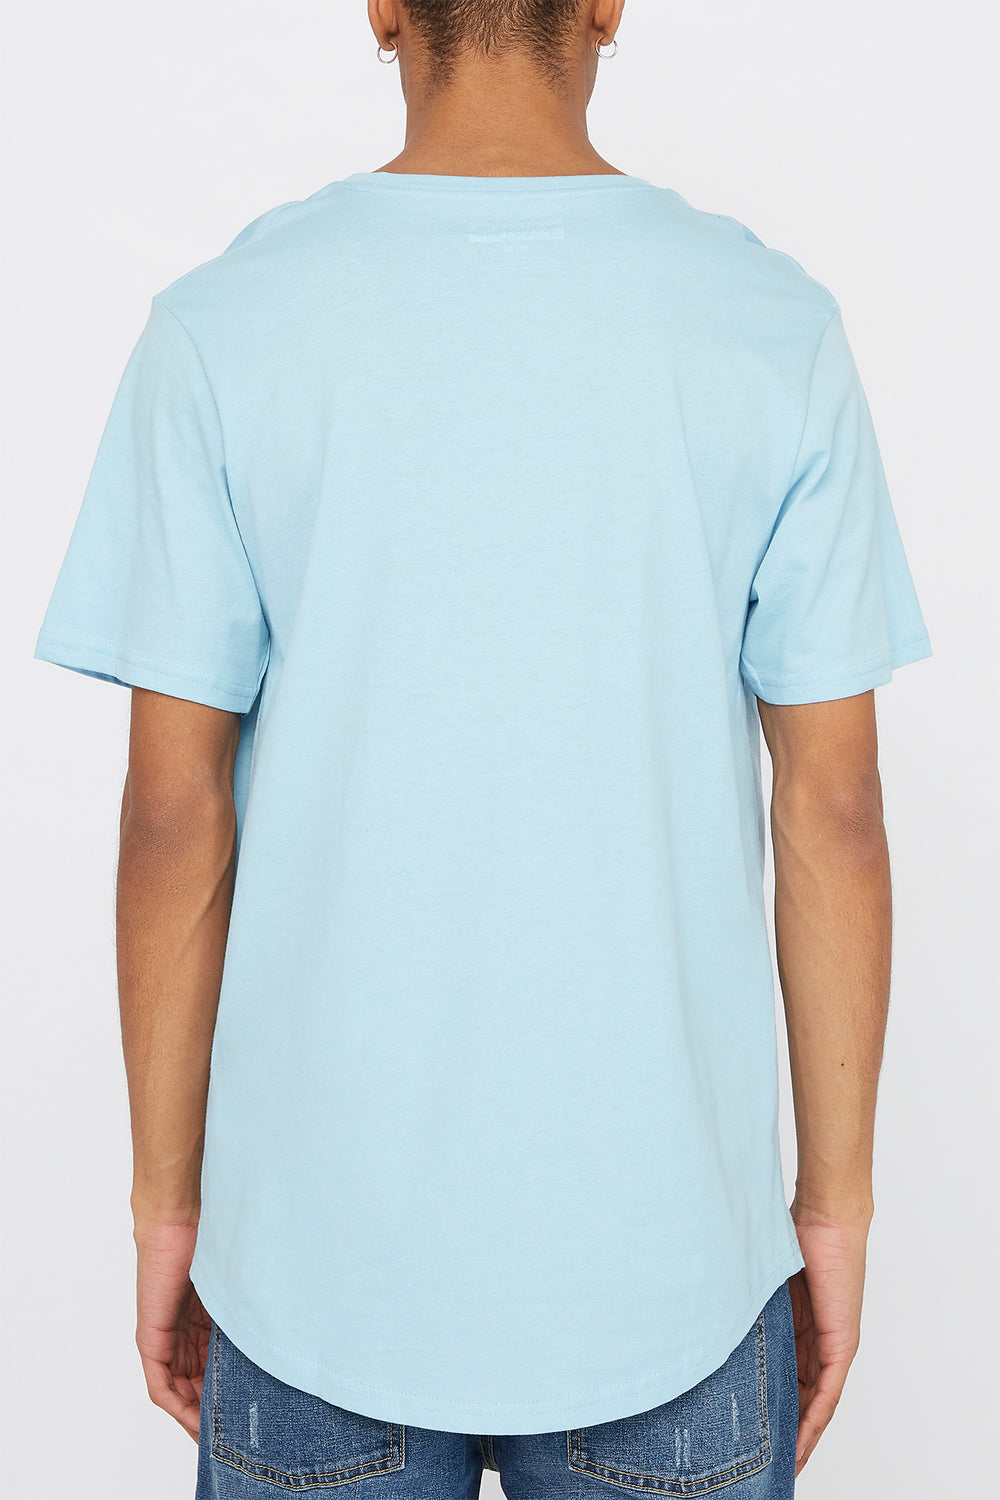 Zoo York Mens Pocket T-Shirt Blue